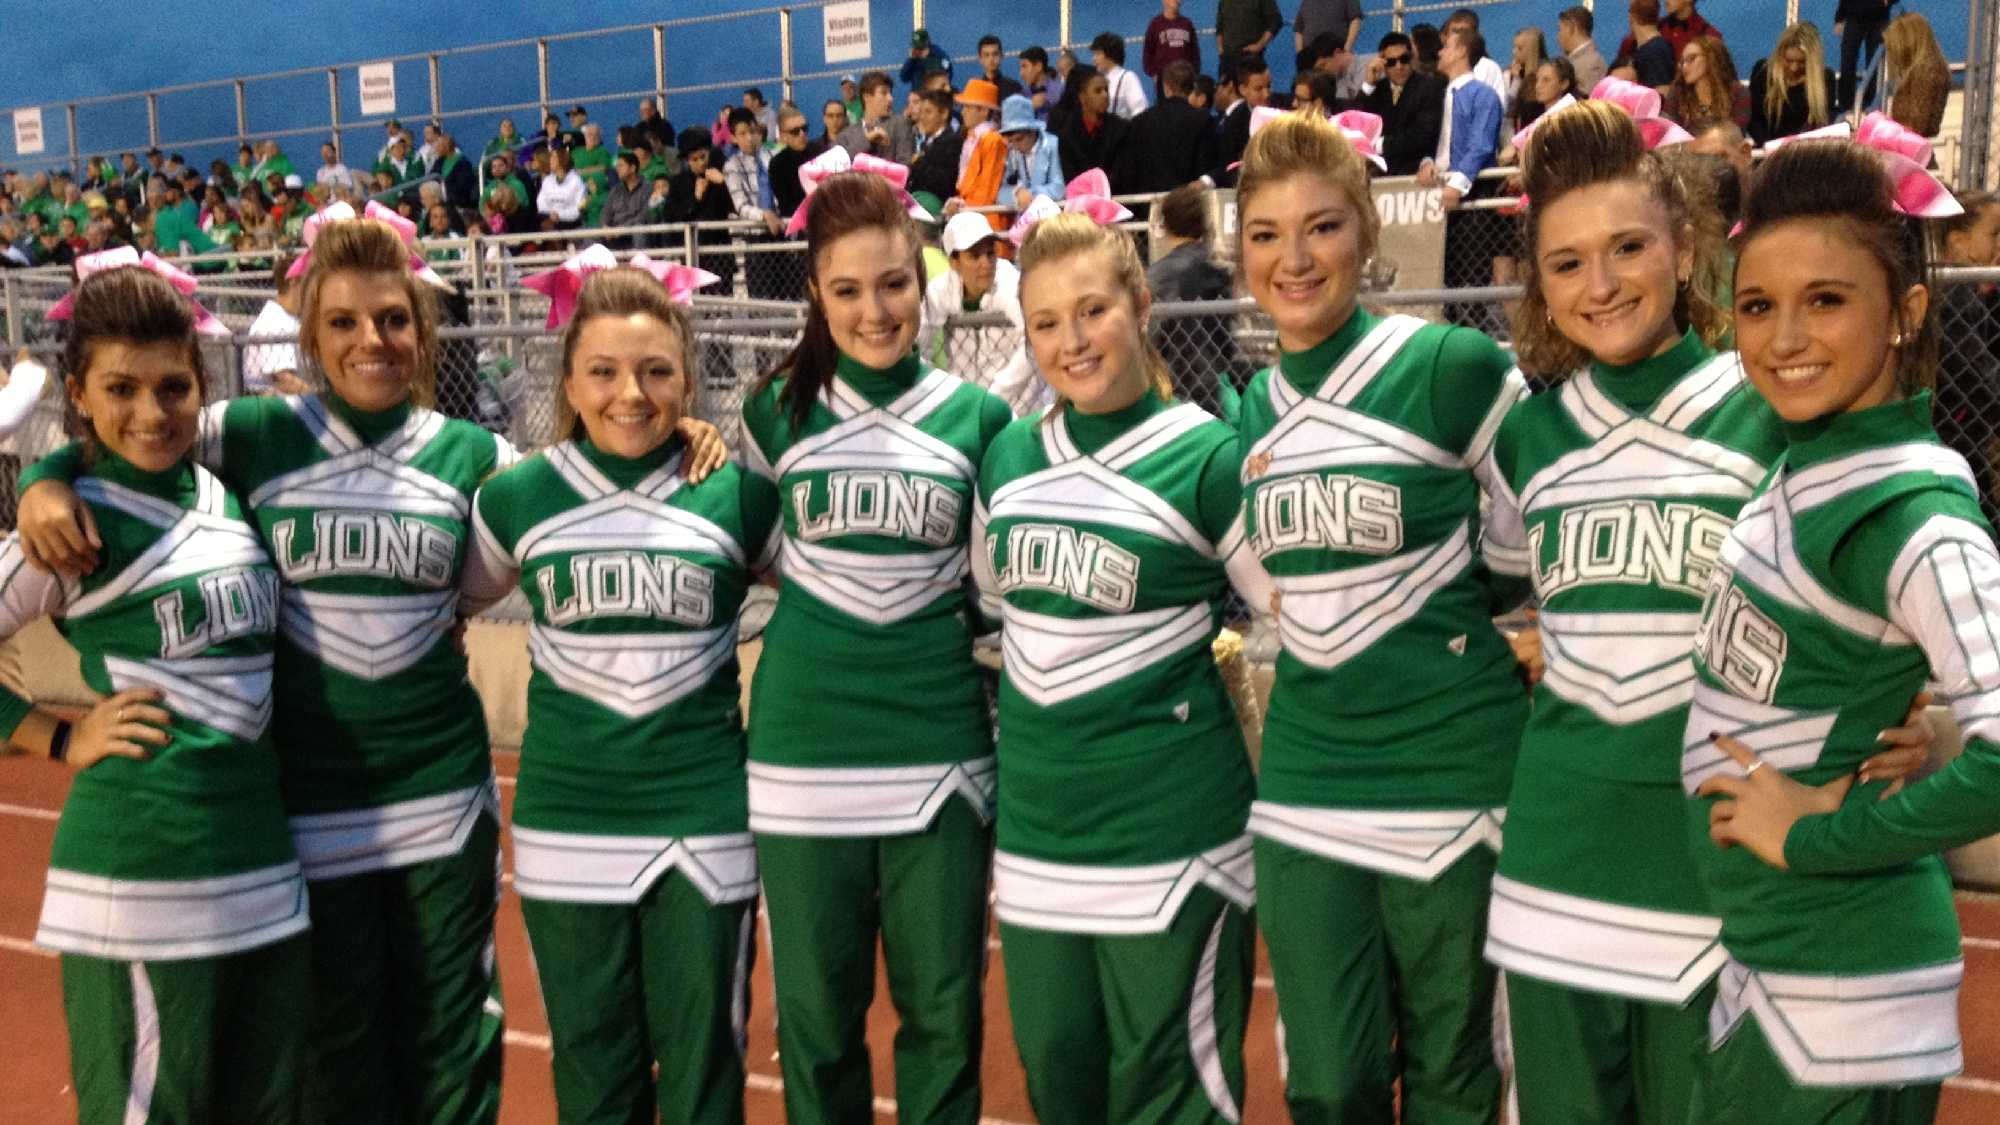 South Fayette cheerleaders